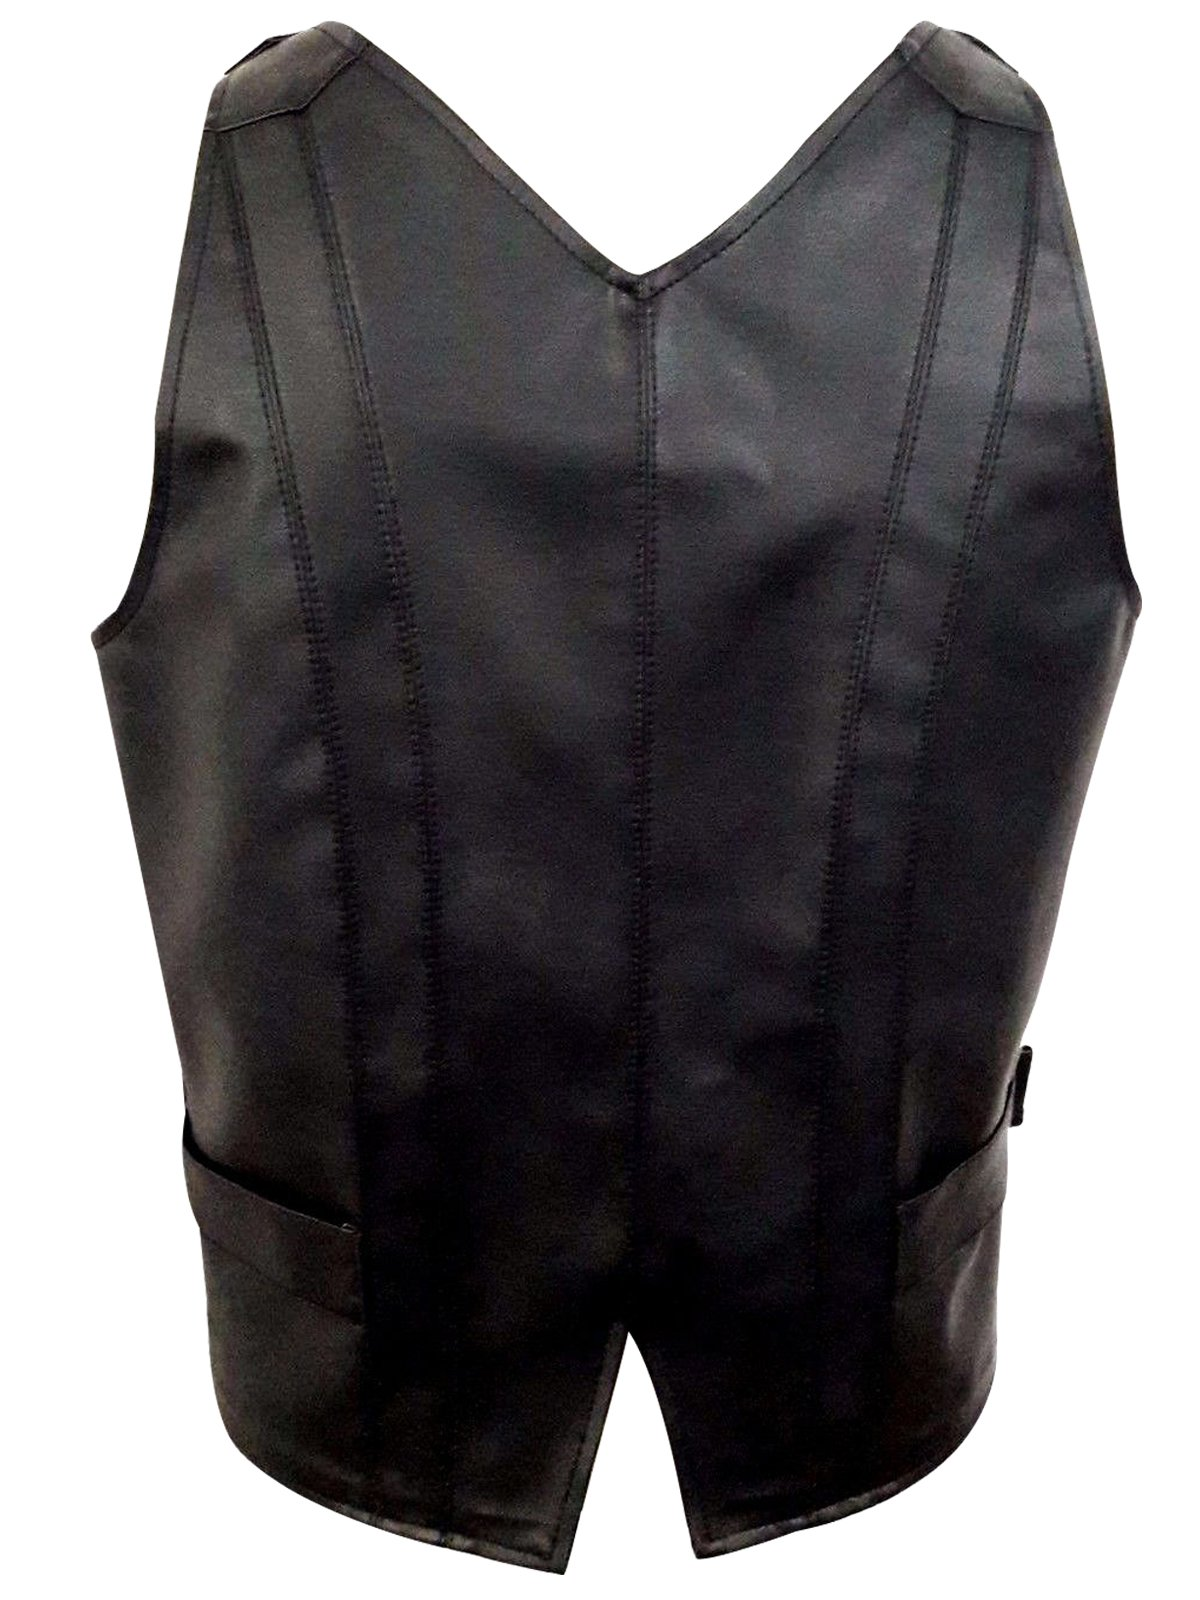 Mens Real Black Leather Heavy Duty Steampunk Gothic Style Vest Waistcoat 4